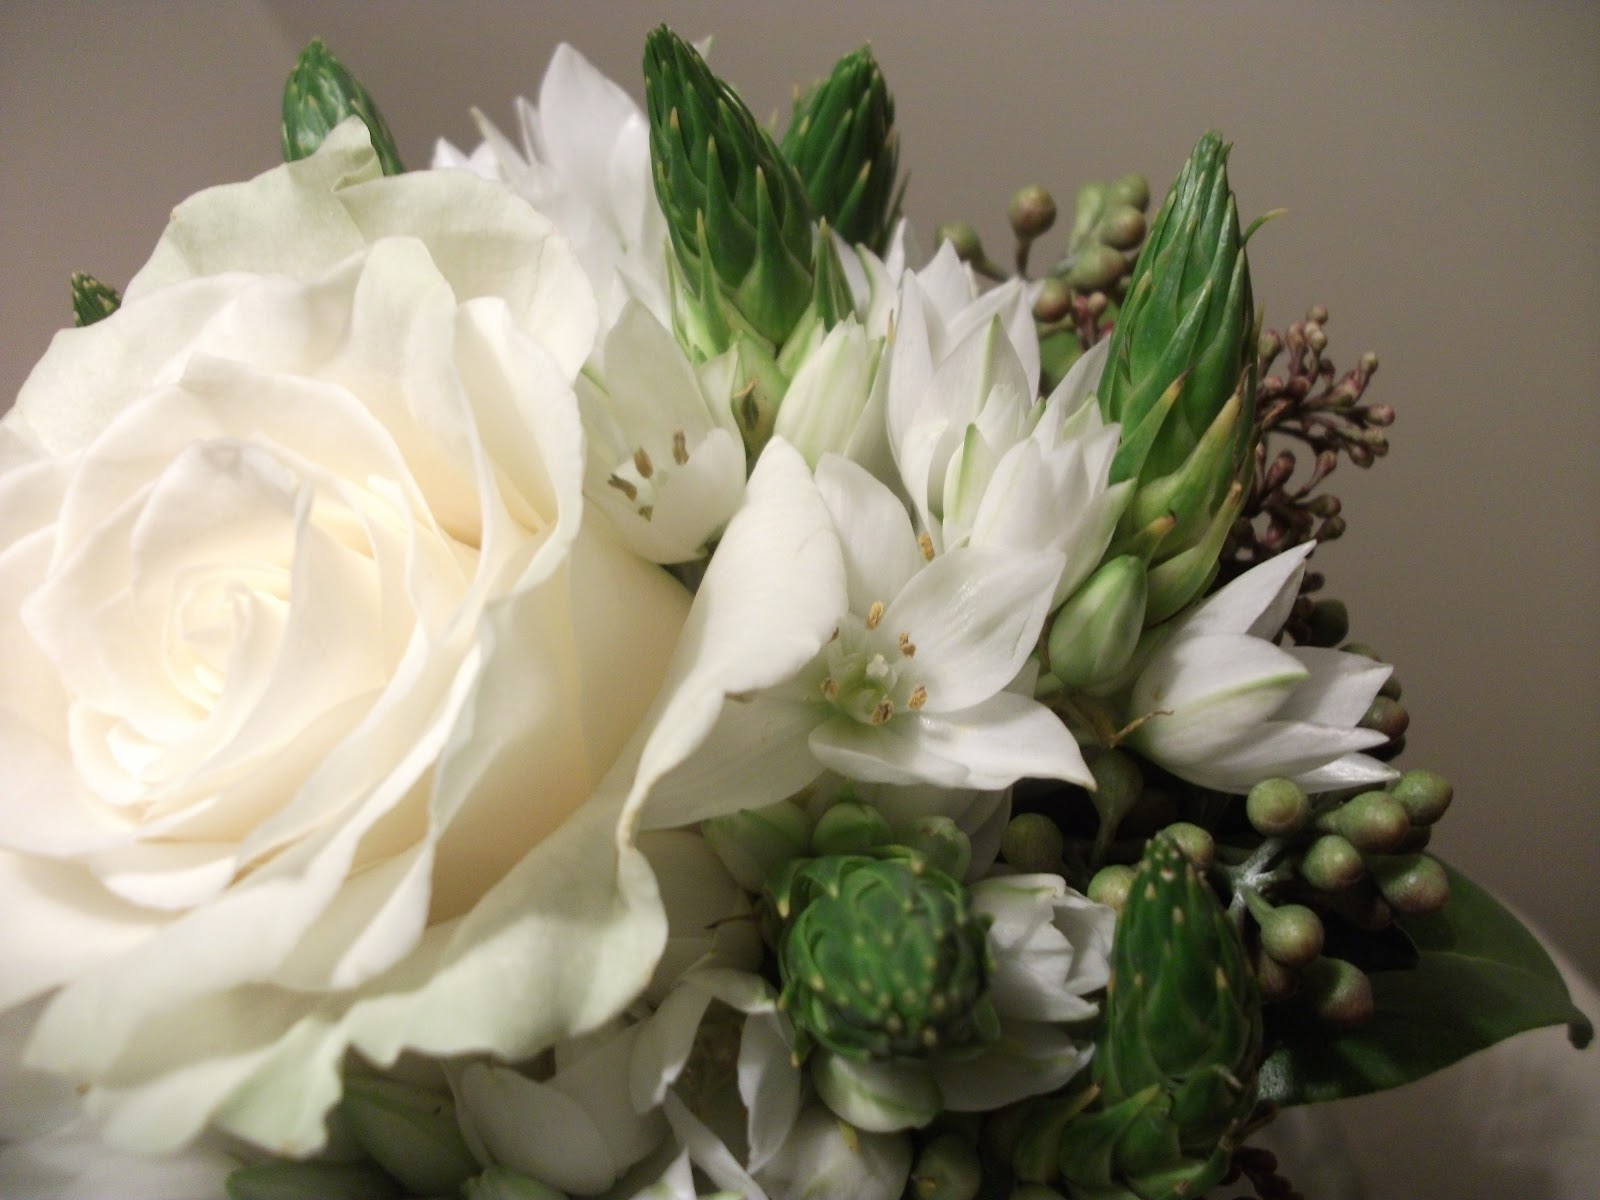 Mini wedding bouquet with one white rose and multipruposed its ideal for a petite bride bridesmaid or flower girl very simple composition but elaborated design light and elegant easy to carry it has one white izmirmasajfo